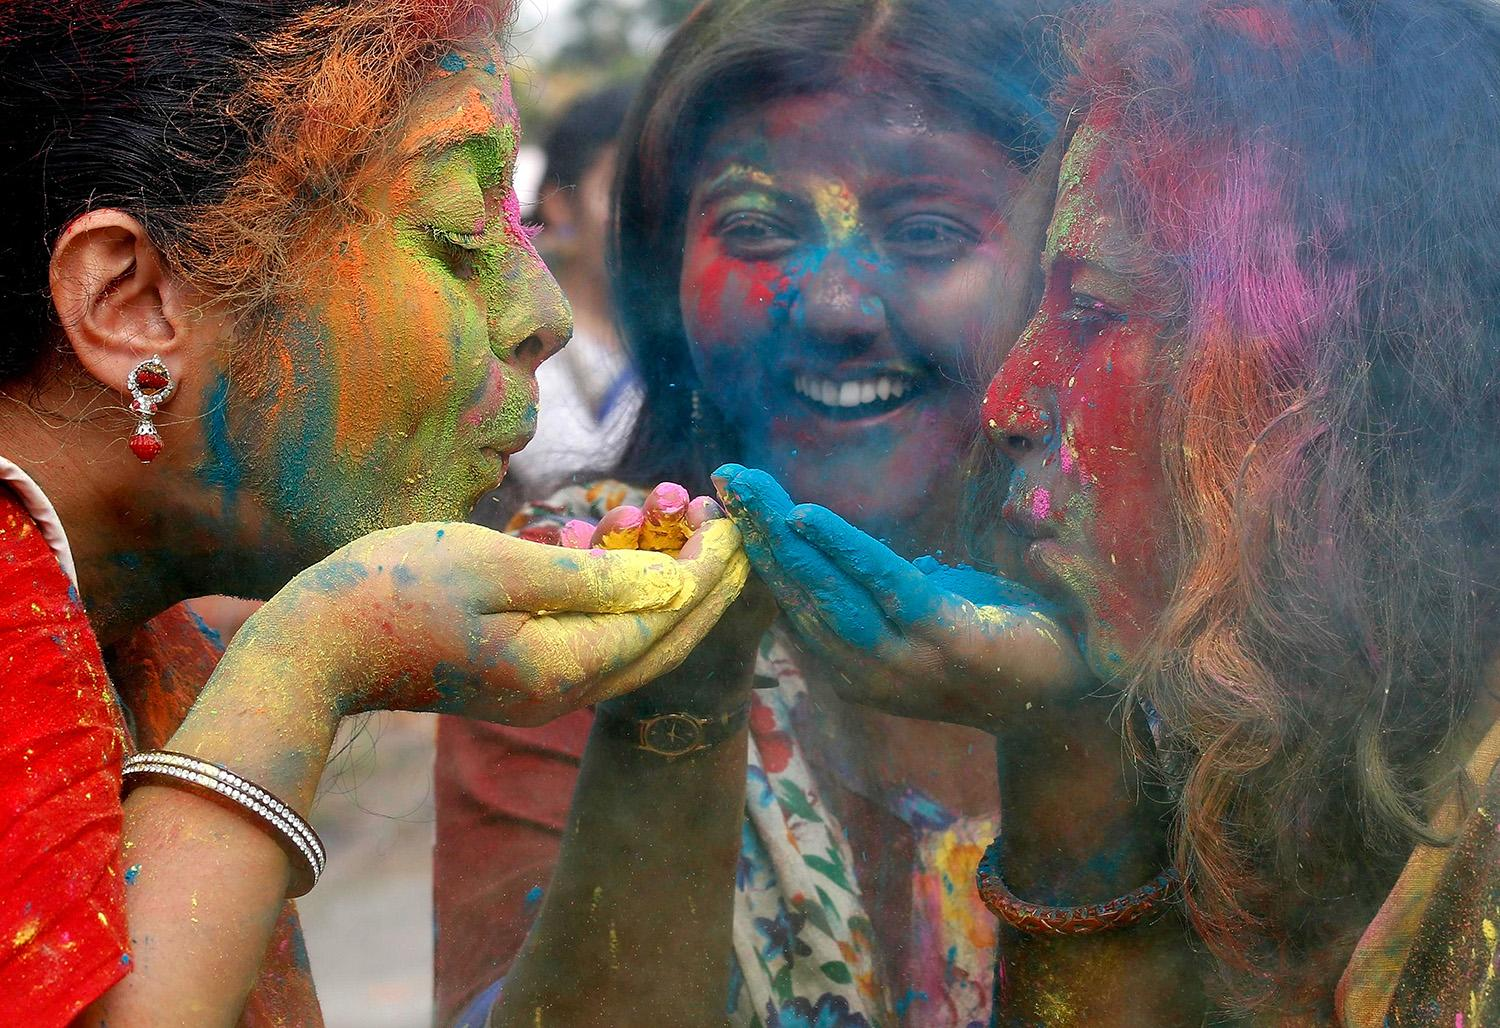 <p>Students of Rabindra Bharati University blow colored powder during Holi, the Festival of Colors, celebrations inside the university campus in Kolkata, India, March 9, 2017. (Rupak De Chowdhuri/Reuters) </p>